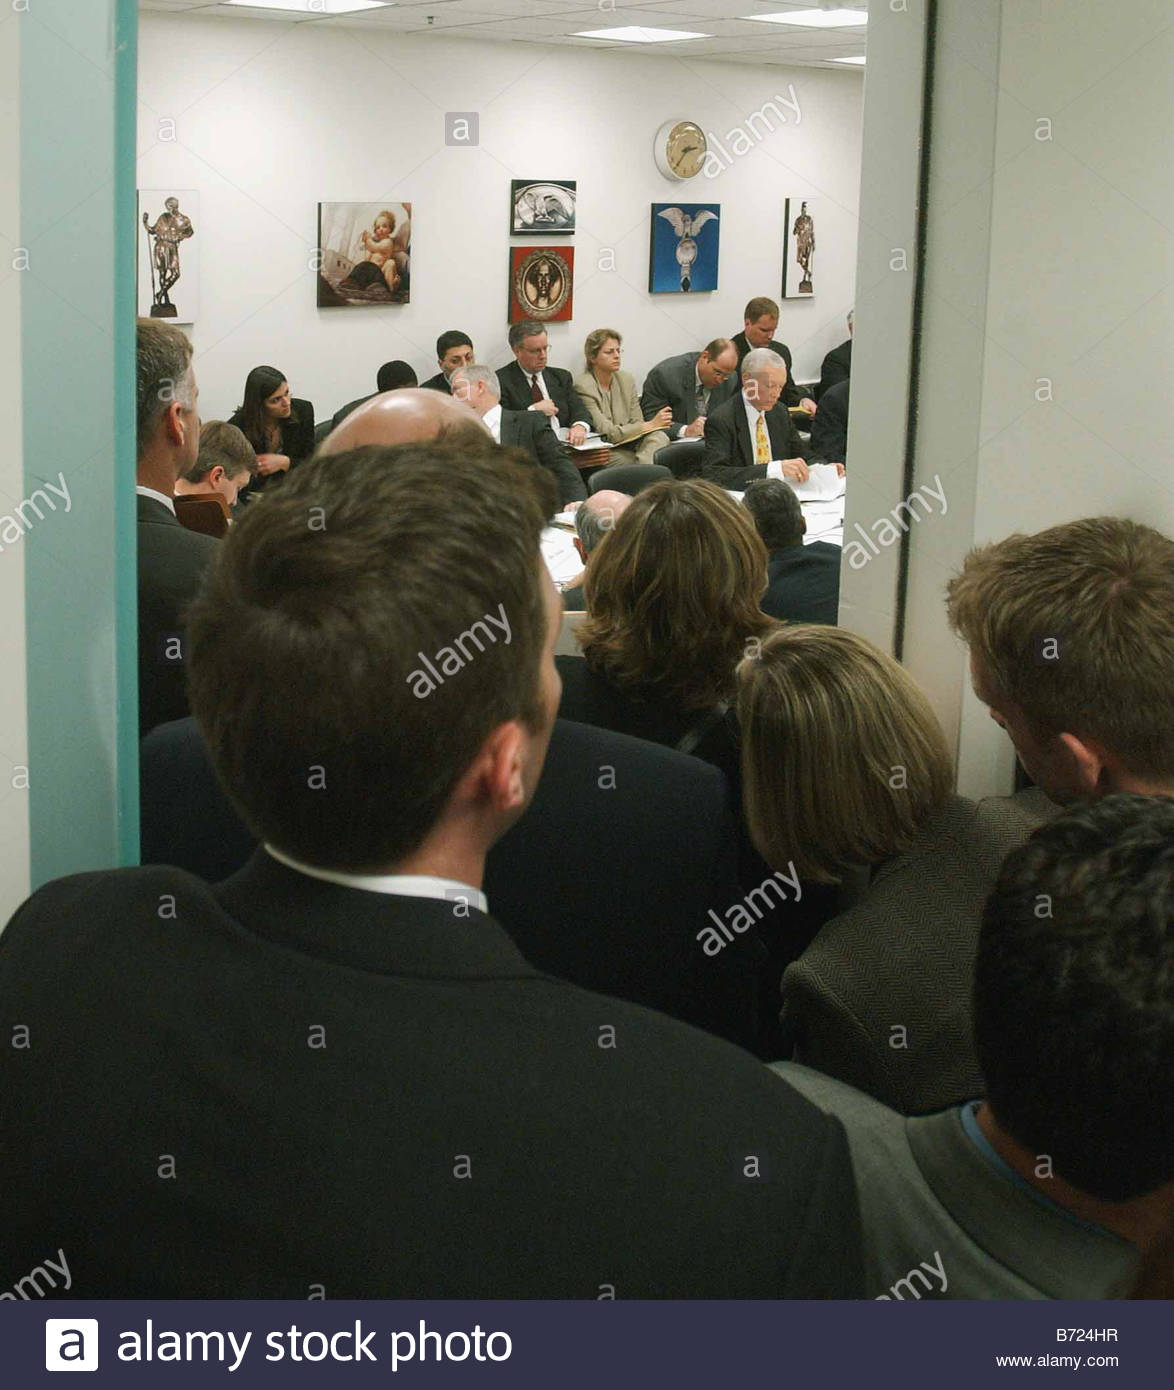 4 8 03 EXPLOITATION OF CHILDREN ACT A crowd jams a doorway to the small room where the House Judiciary Senate Judiciary - Stock Image